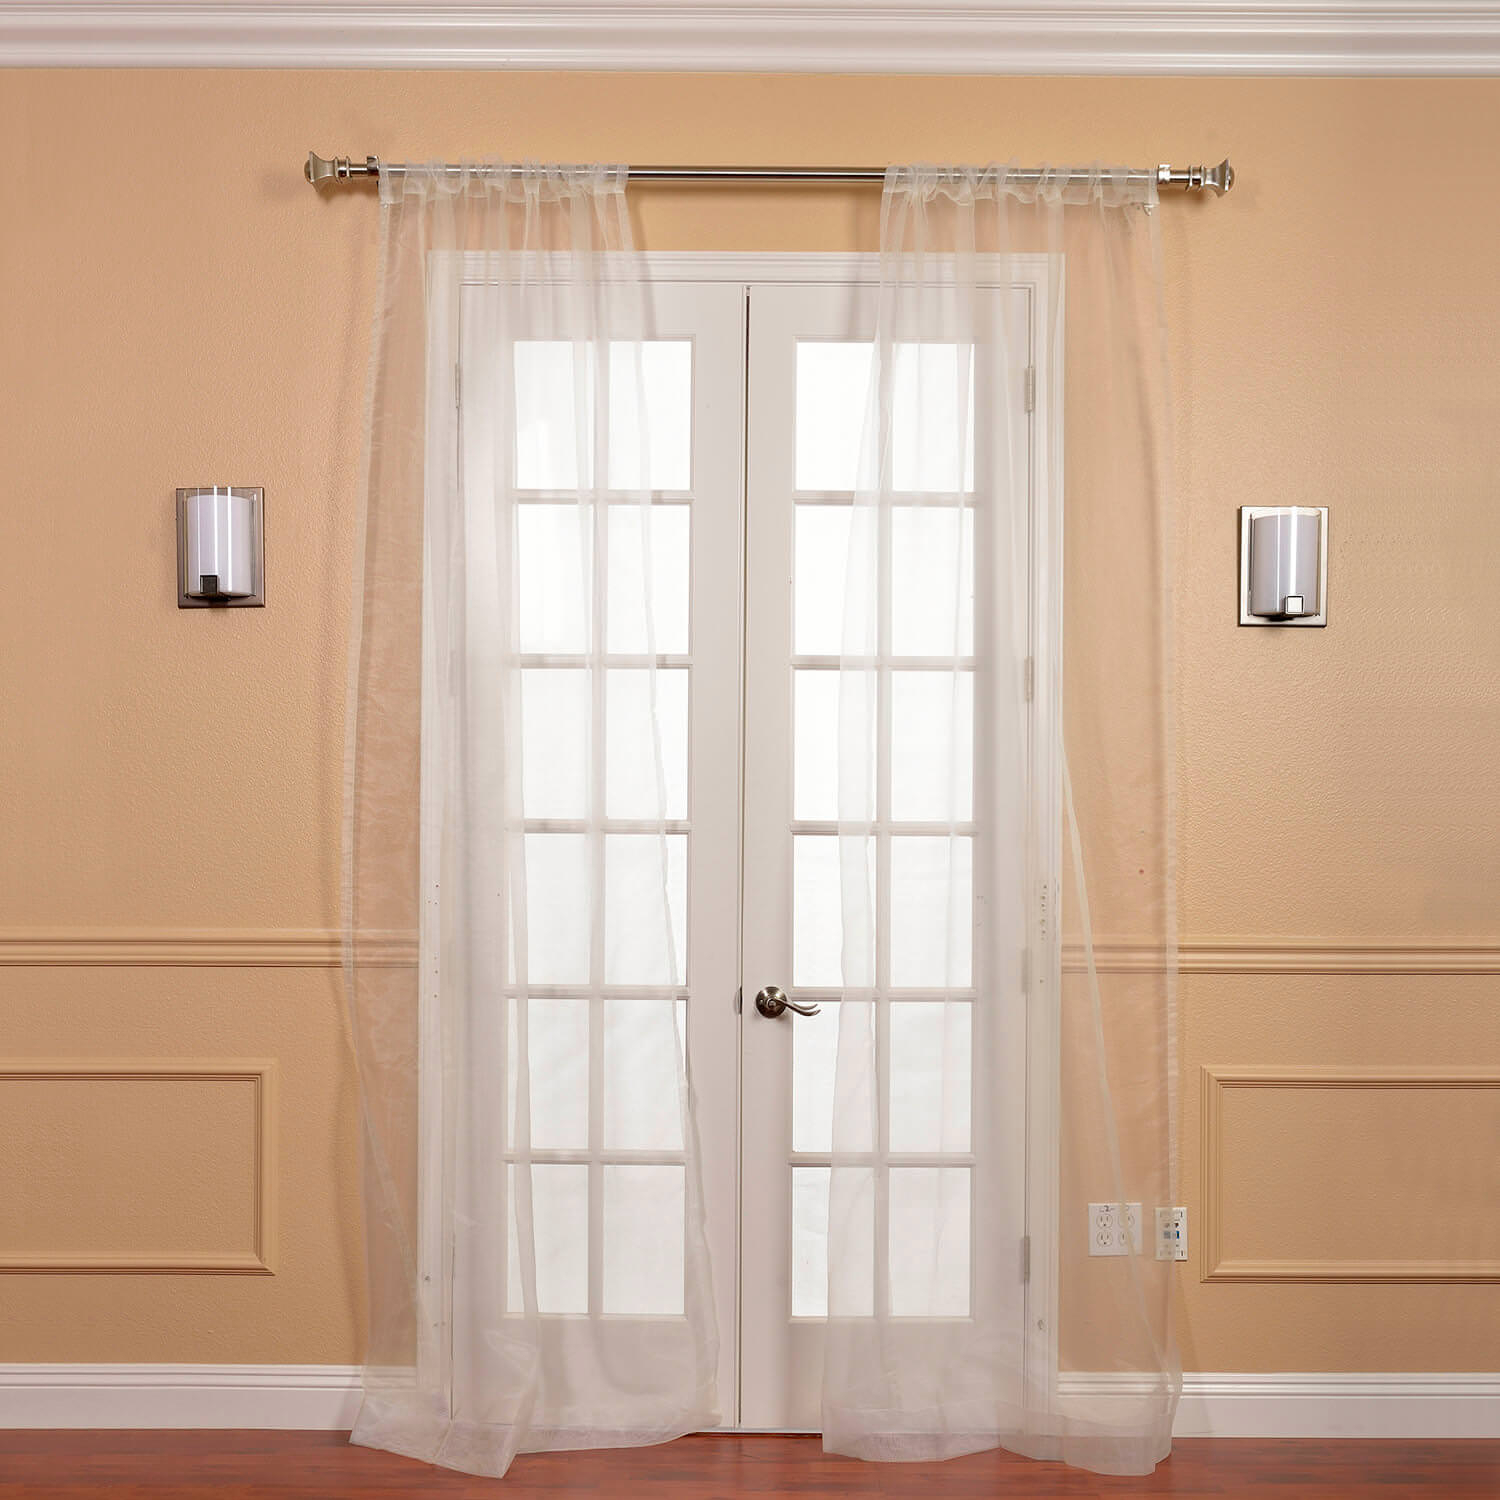 Silk Curtains And Drapes | Silk Curtain Shop Pertaining To Signature White Double Layer Sheer Curtain Panels (View 28 of 30)